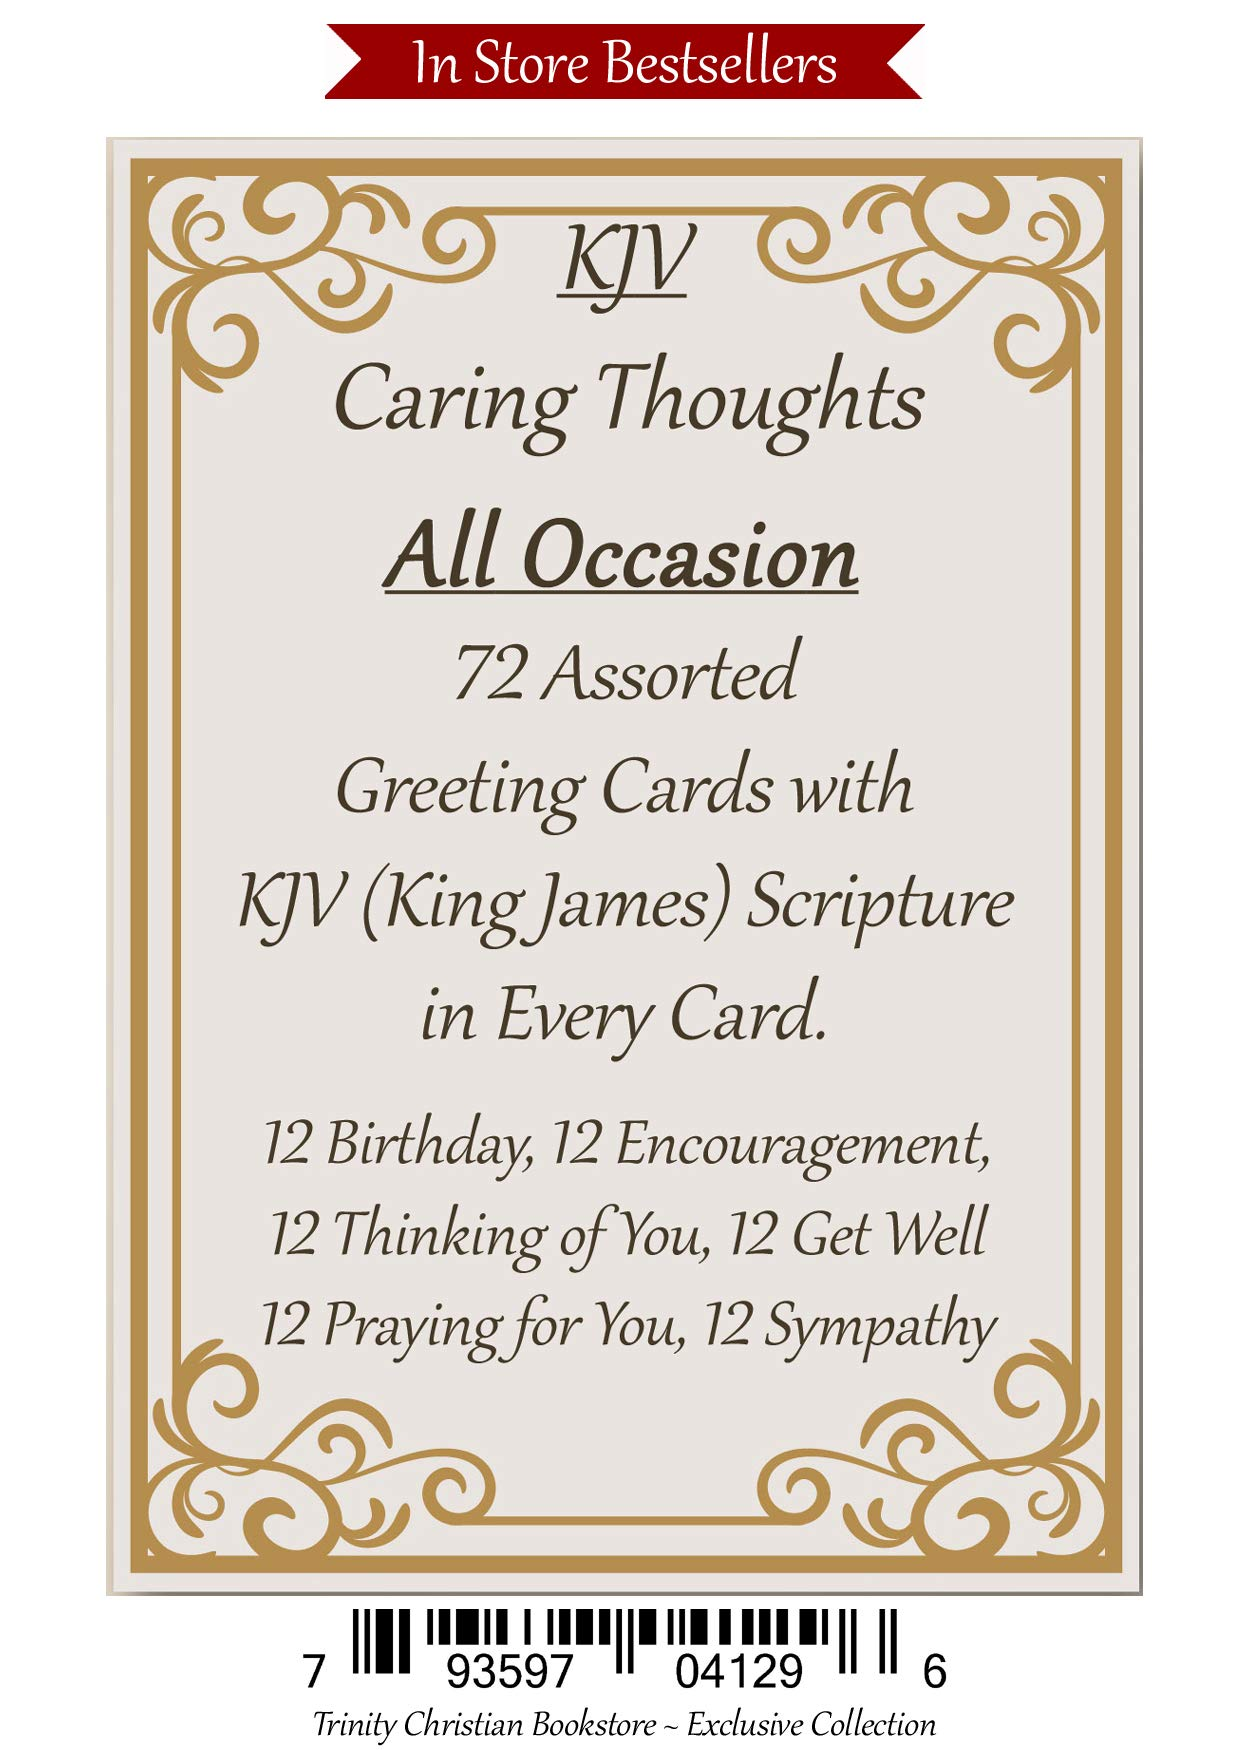 King James 72 ct KJV All Occasion Christian/Religious Greeting Card Asst. w/Scripture by Caring Thoughts